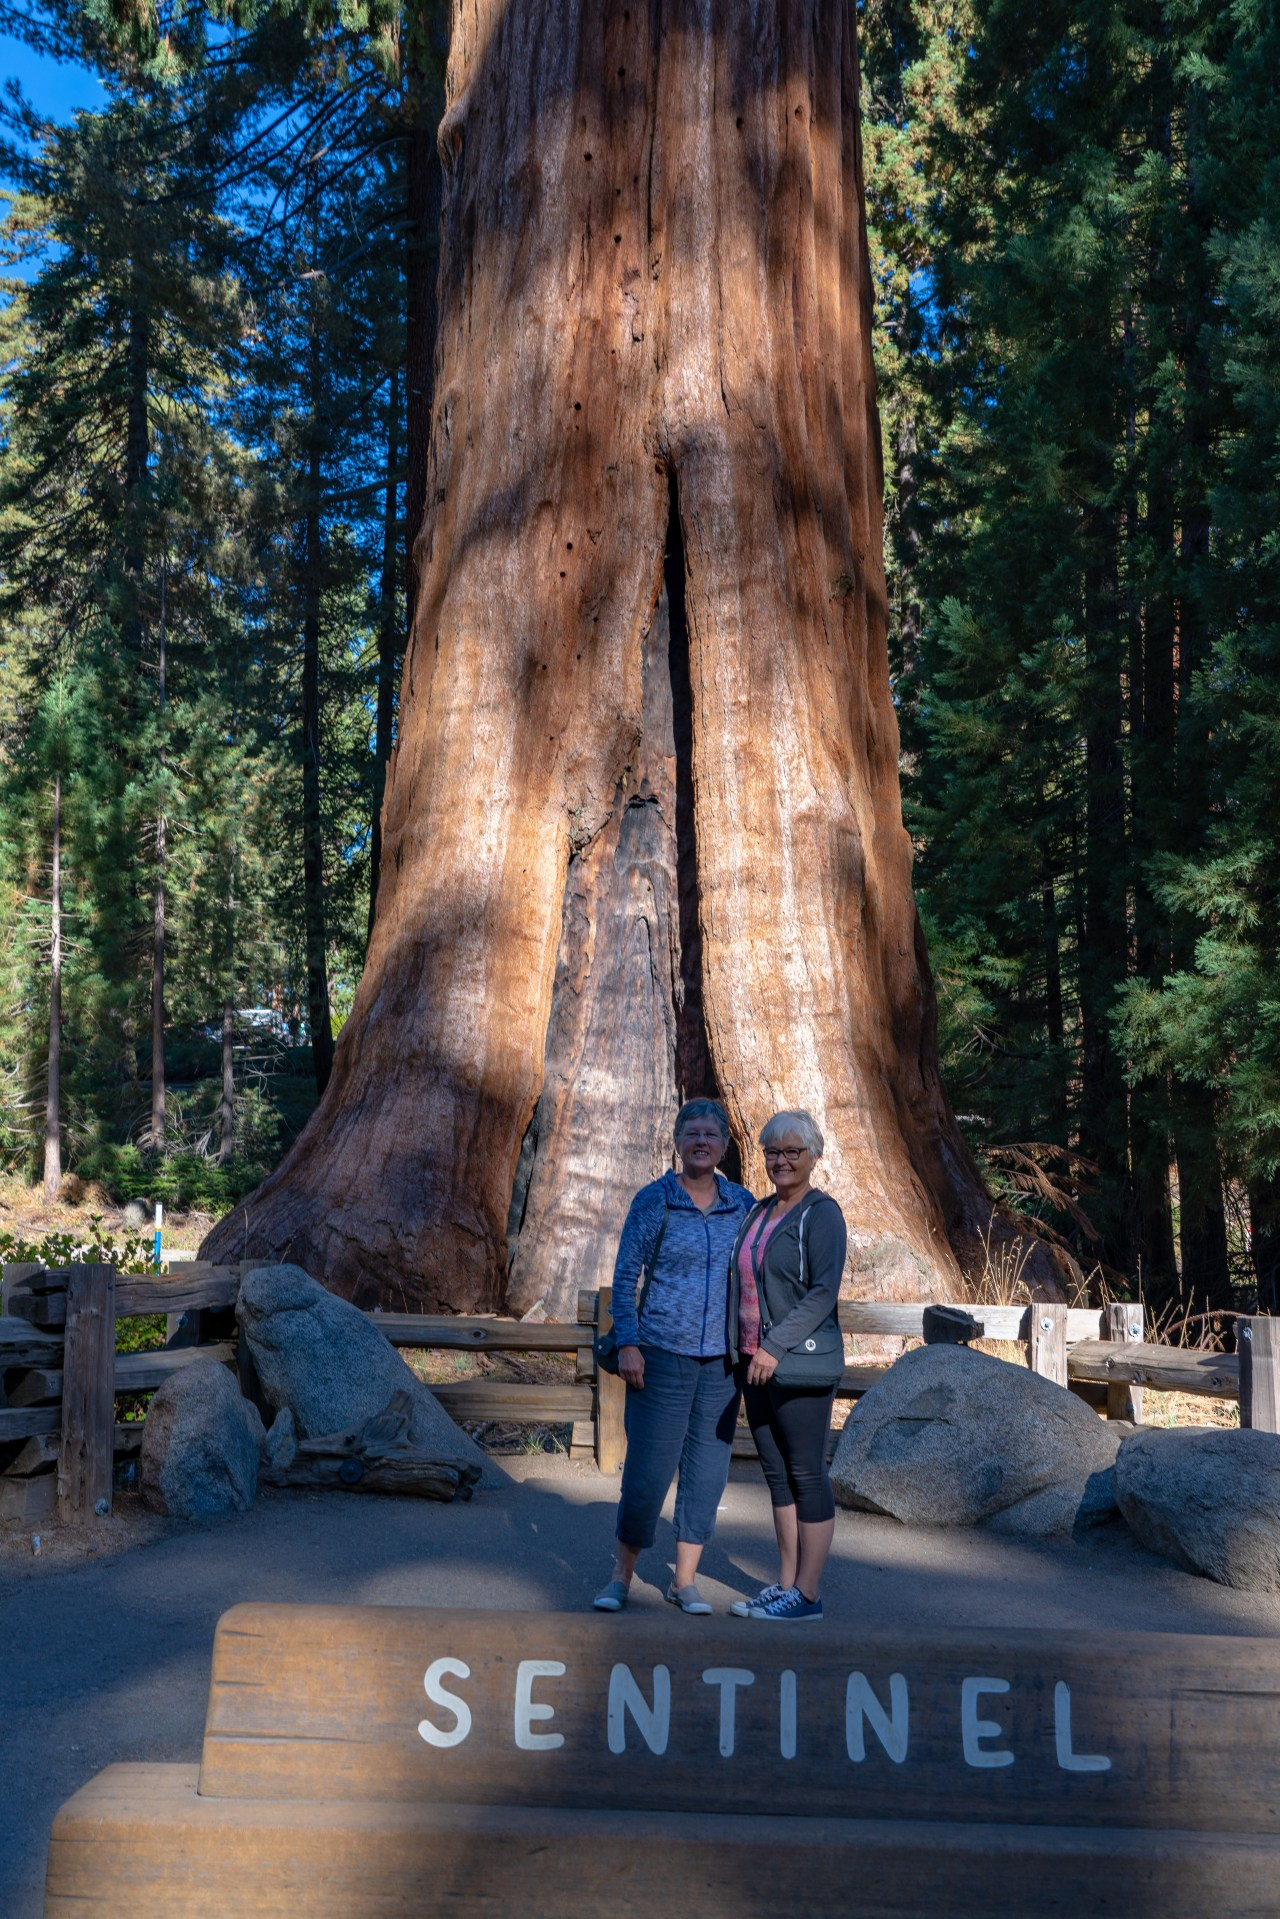 Sentinel Tre; Big Trees Trail, Sequoia National Park